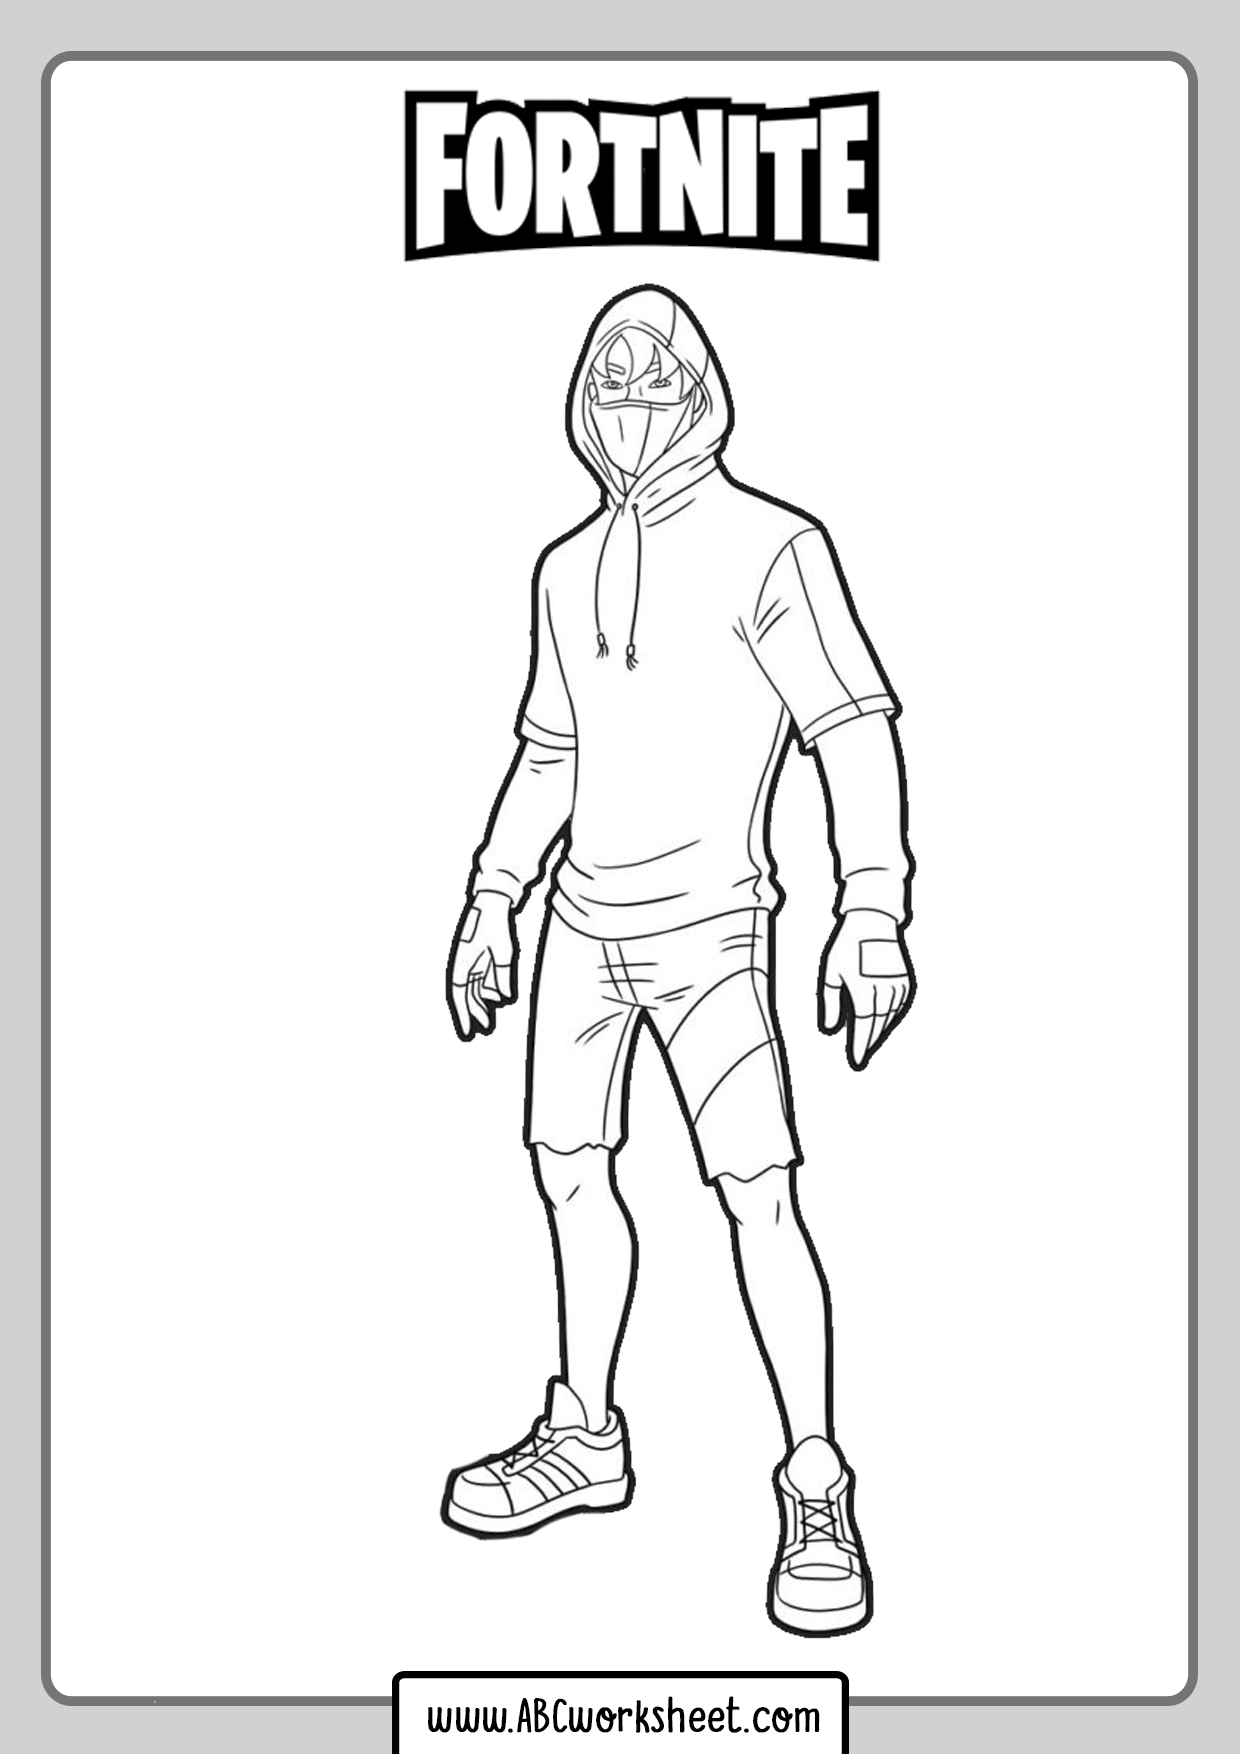 Human Skin Fortnite Coloring Pages